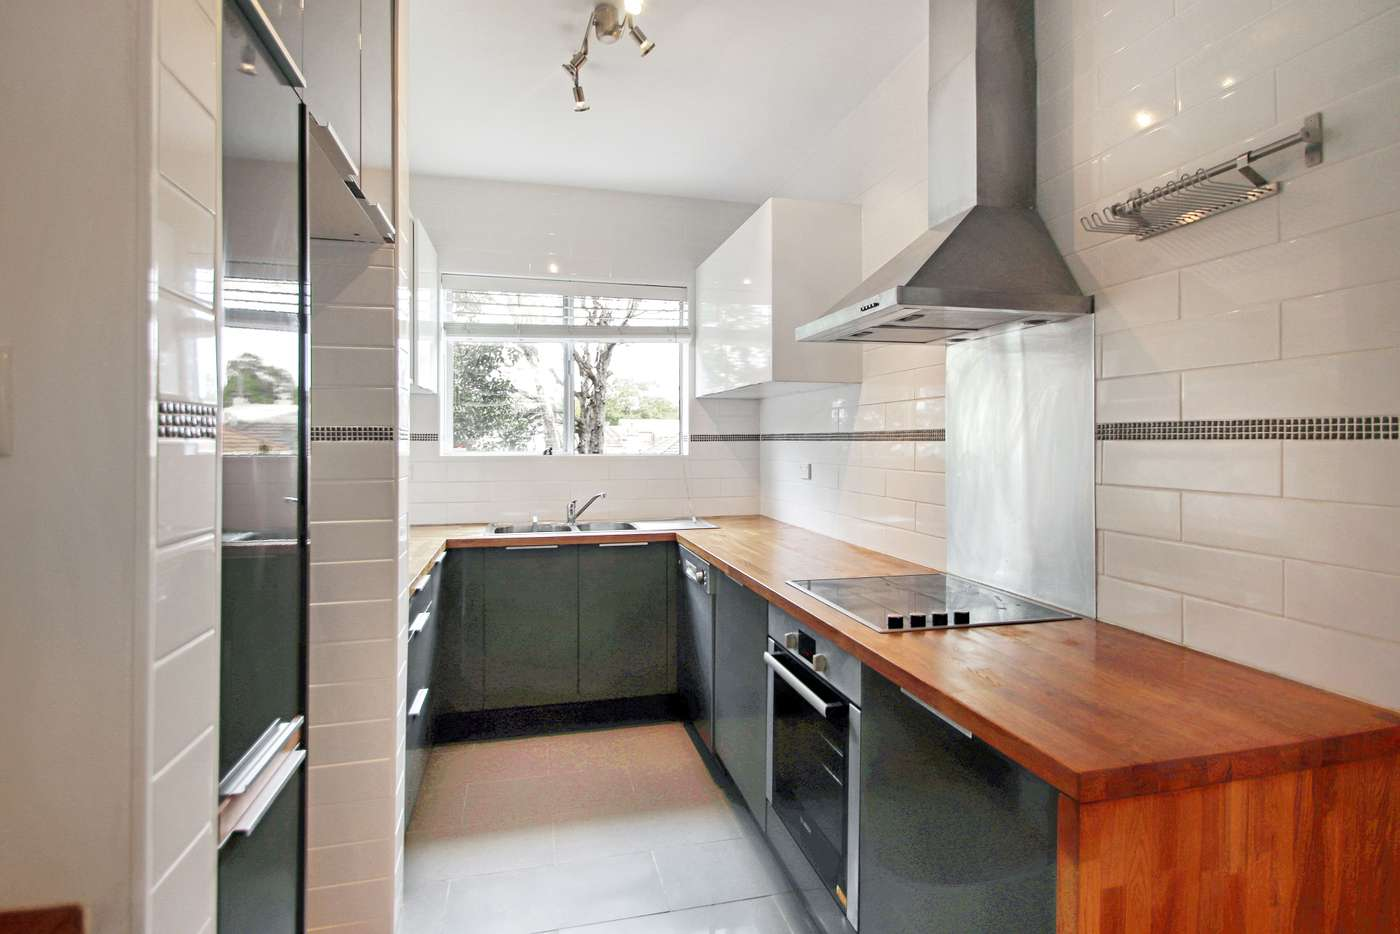 Main view of Homely apartment listing, 3/9-11 Harvard Street, Gladesville NSW 2111